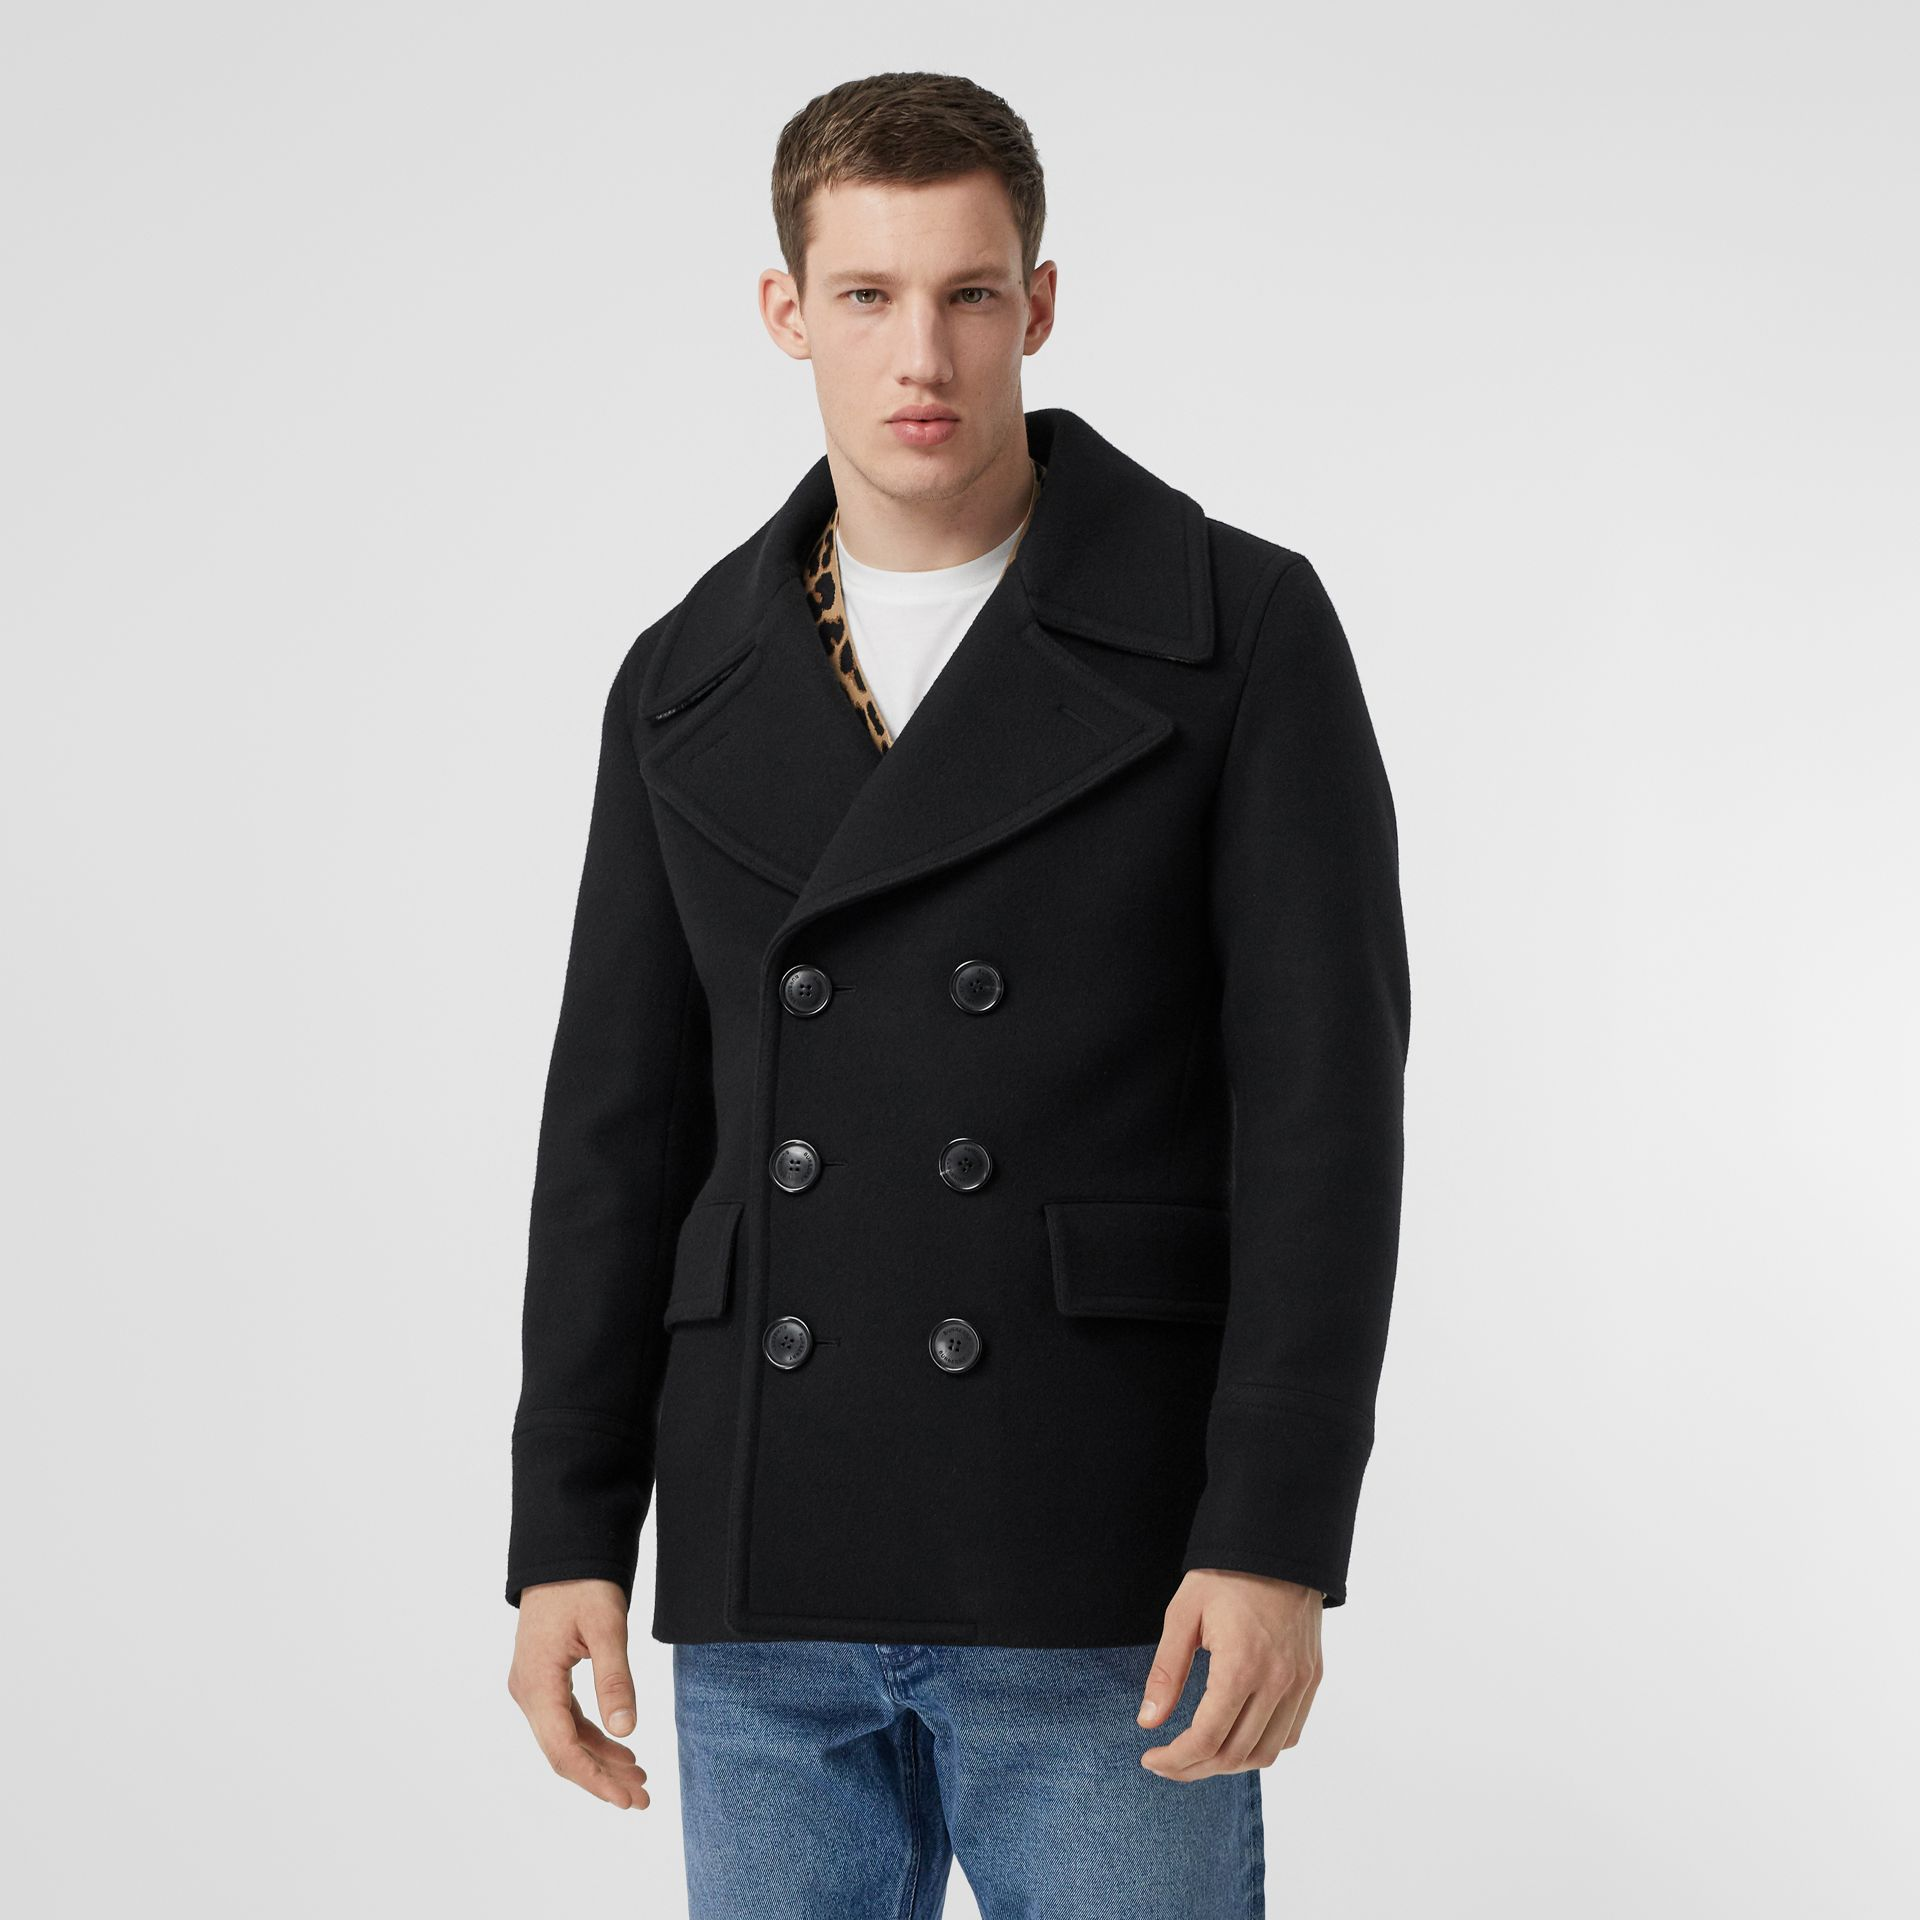 Wool Blend Pea Coat in Black - Men | Burberry - gallery image 5